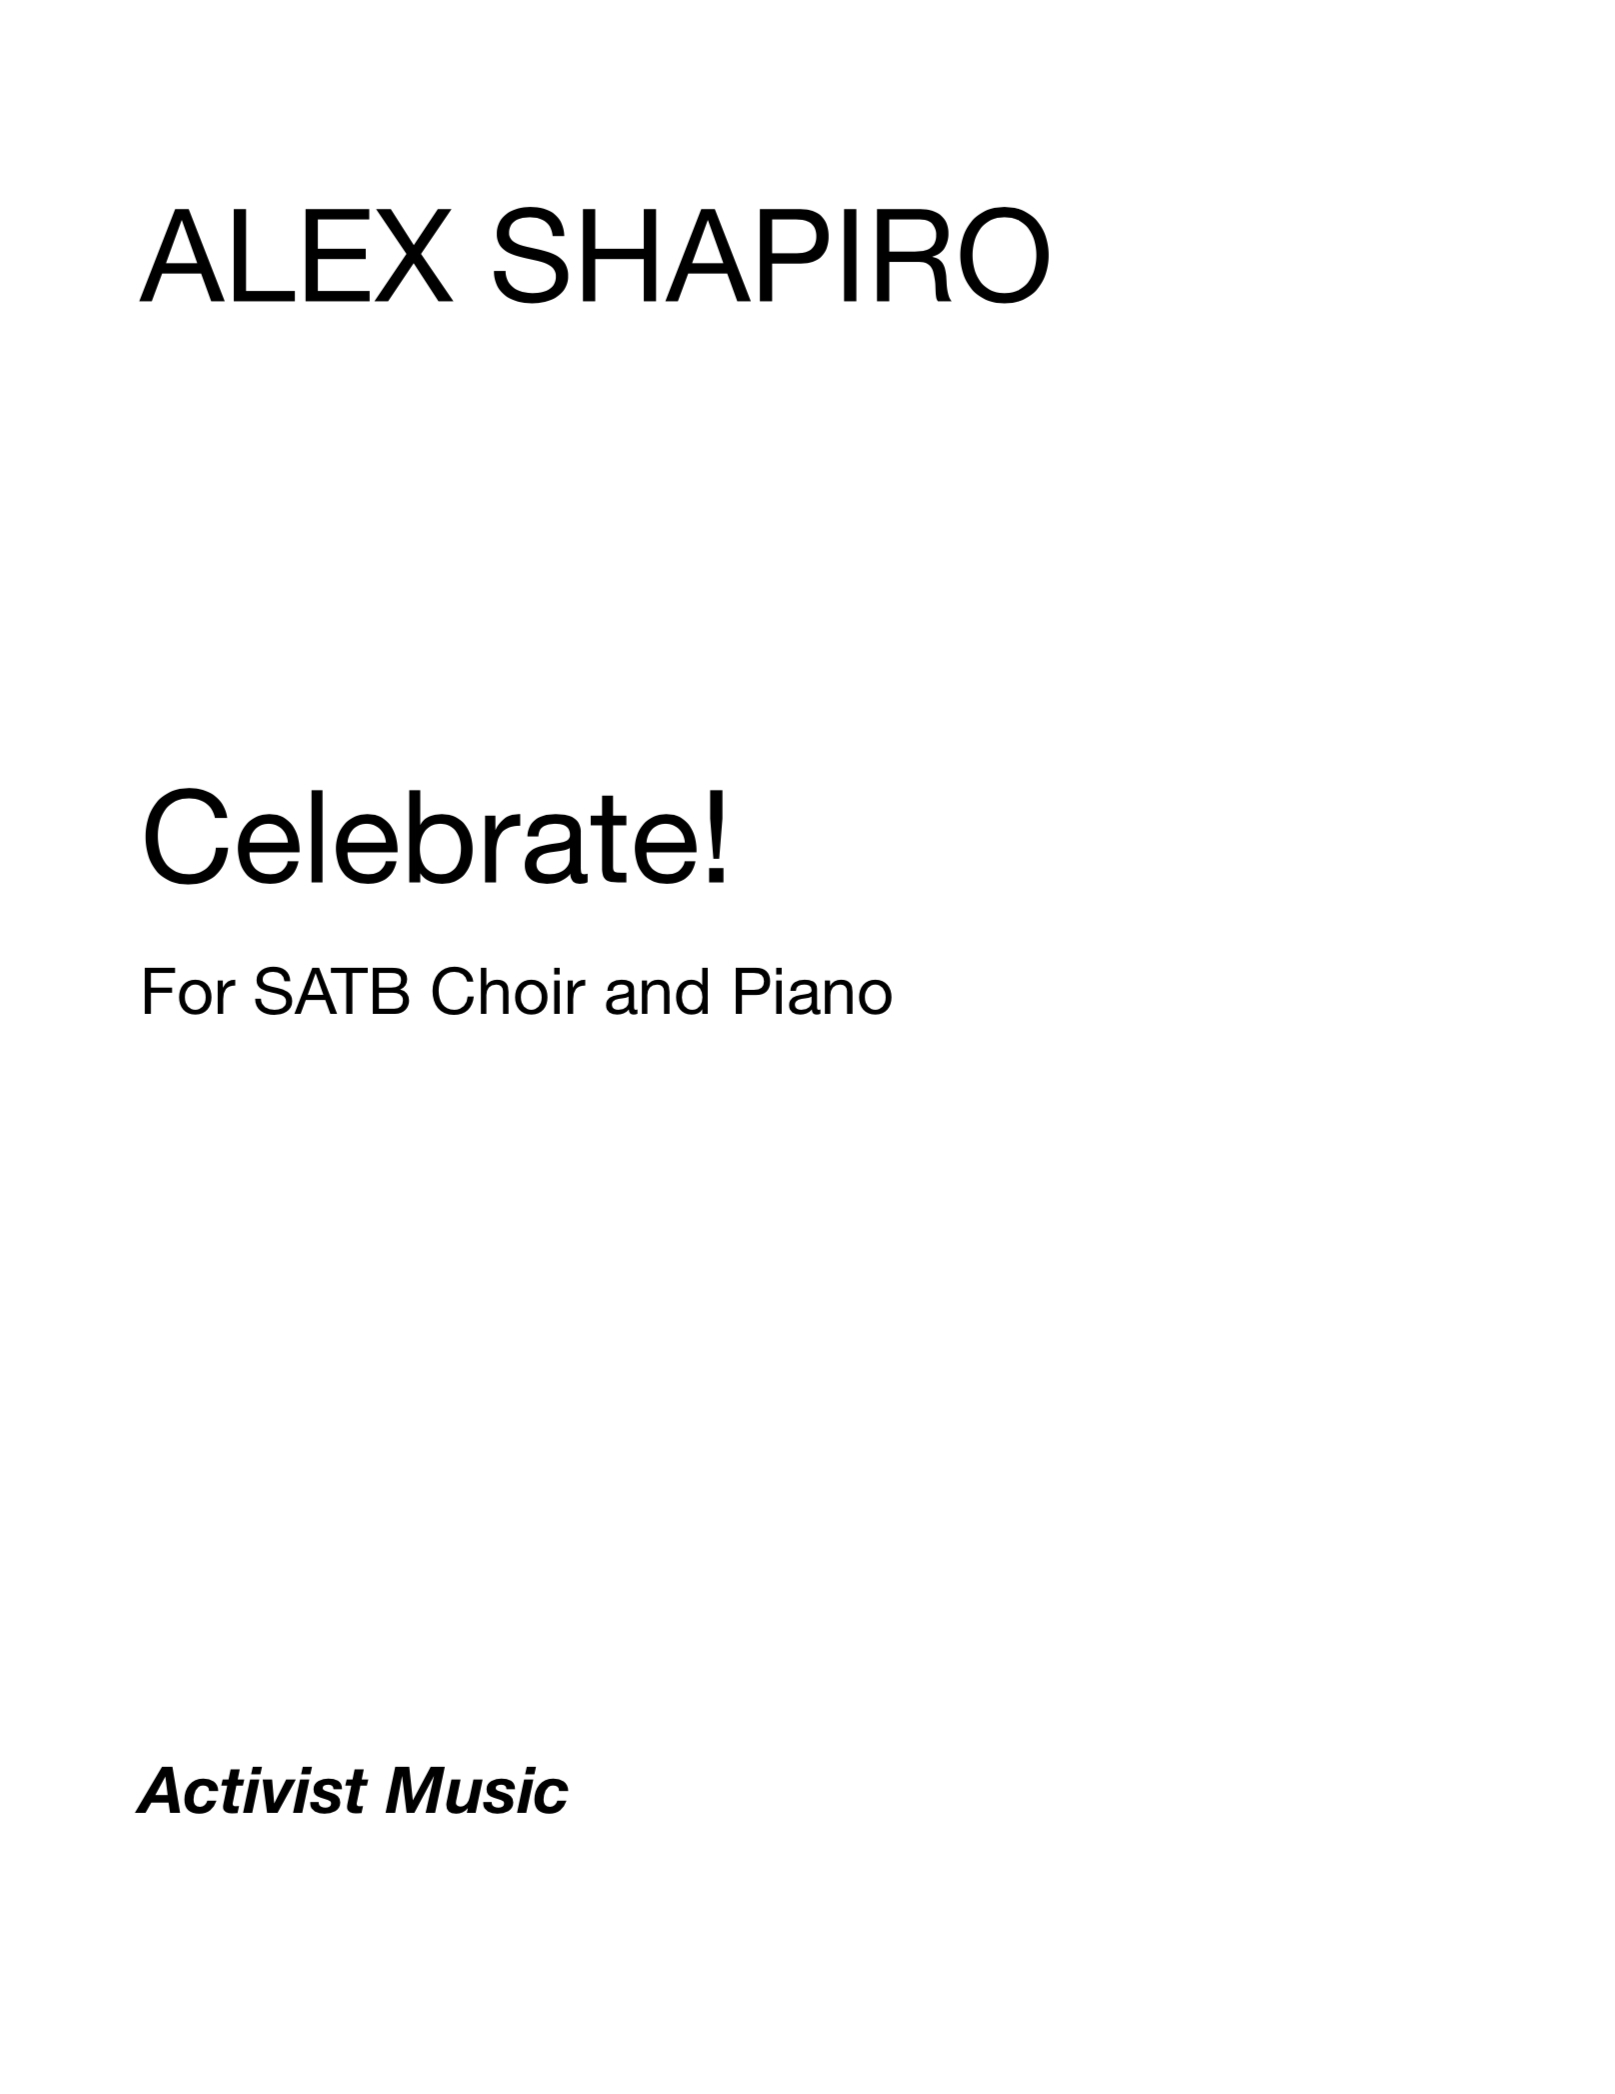 Celebrate! by Alex Shapiro